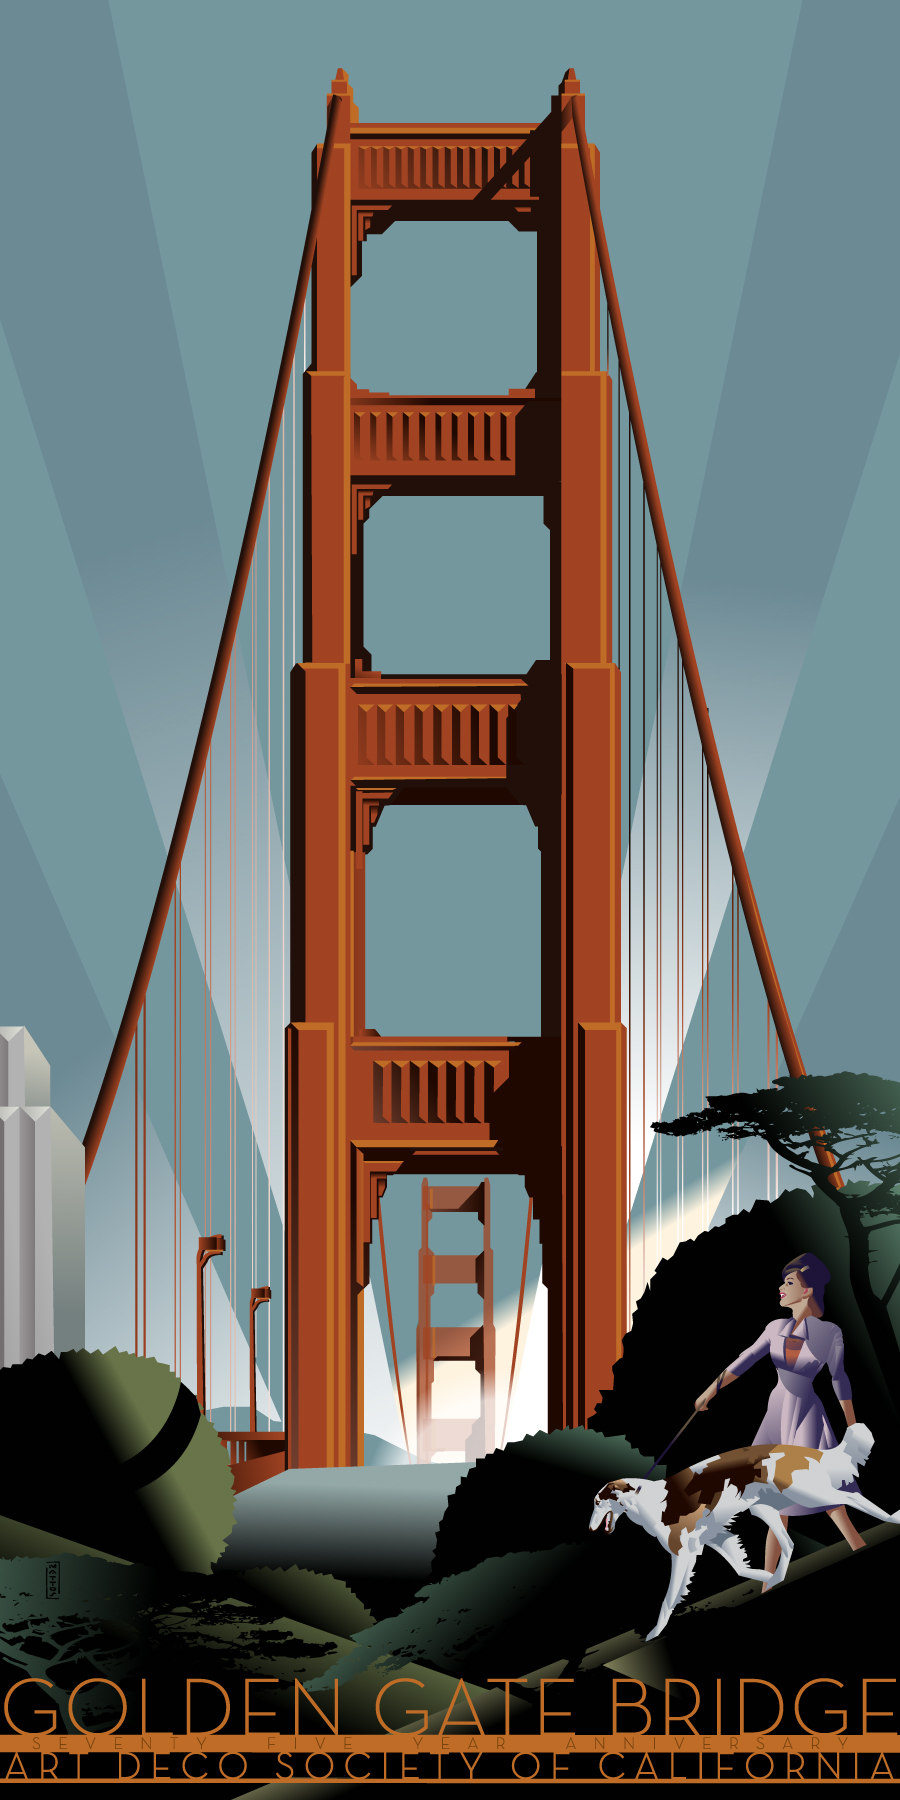 Art deco society of california golden gate bridge poster Deco san francisco